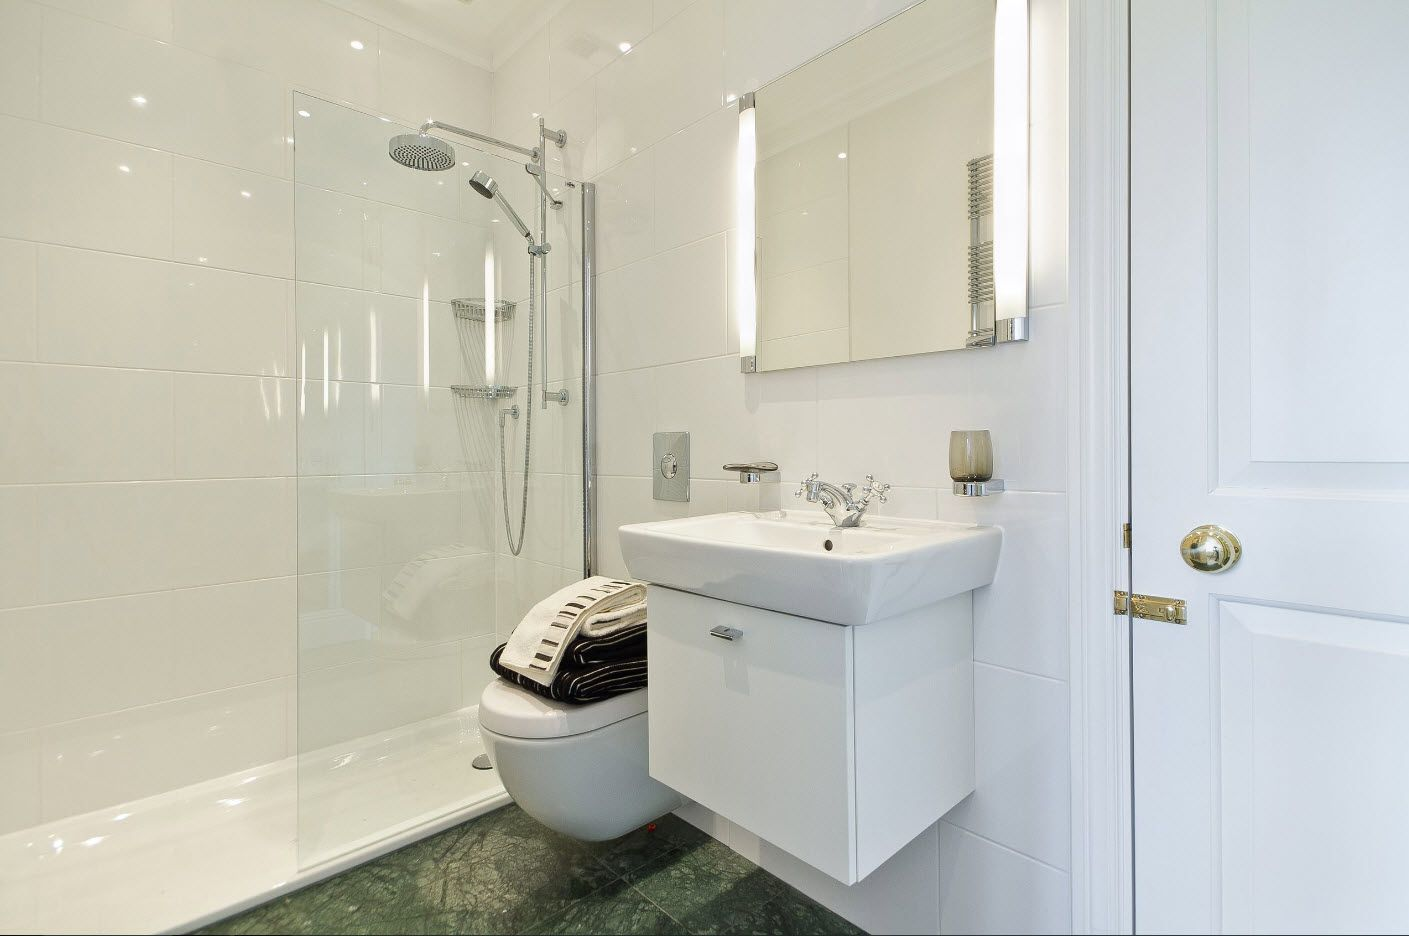 Hovering vanity with rectangular sink